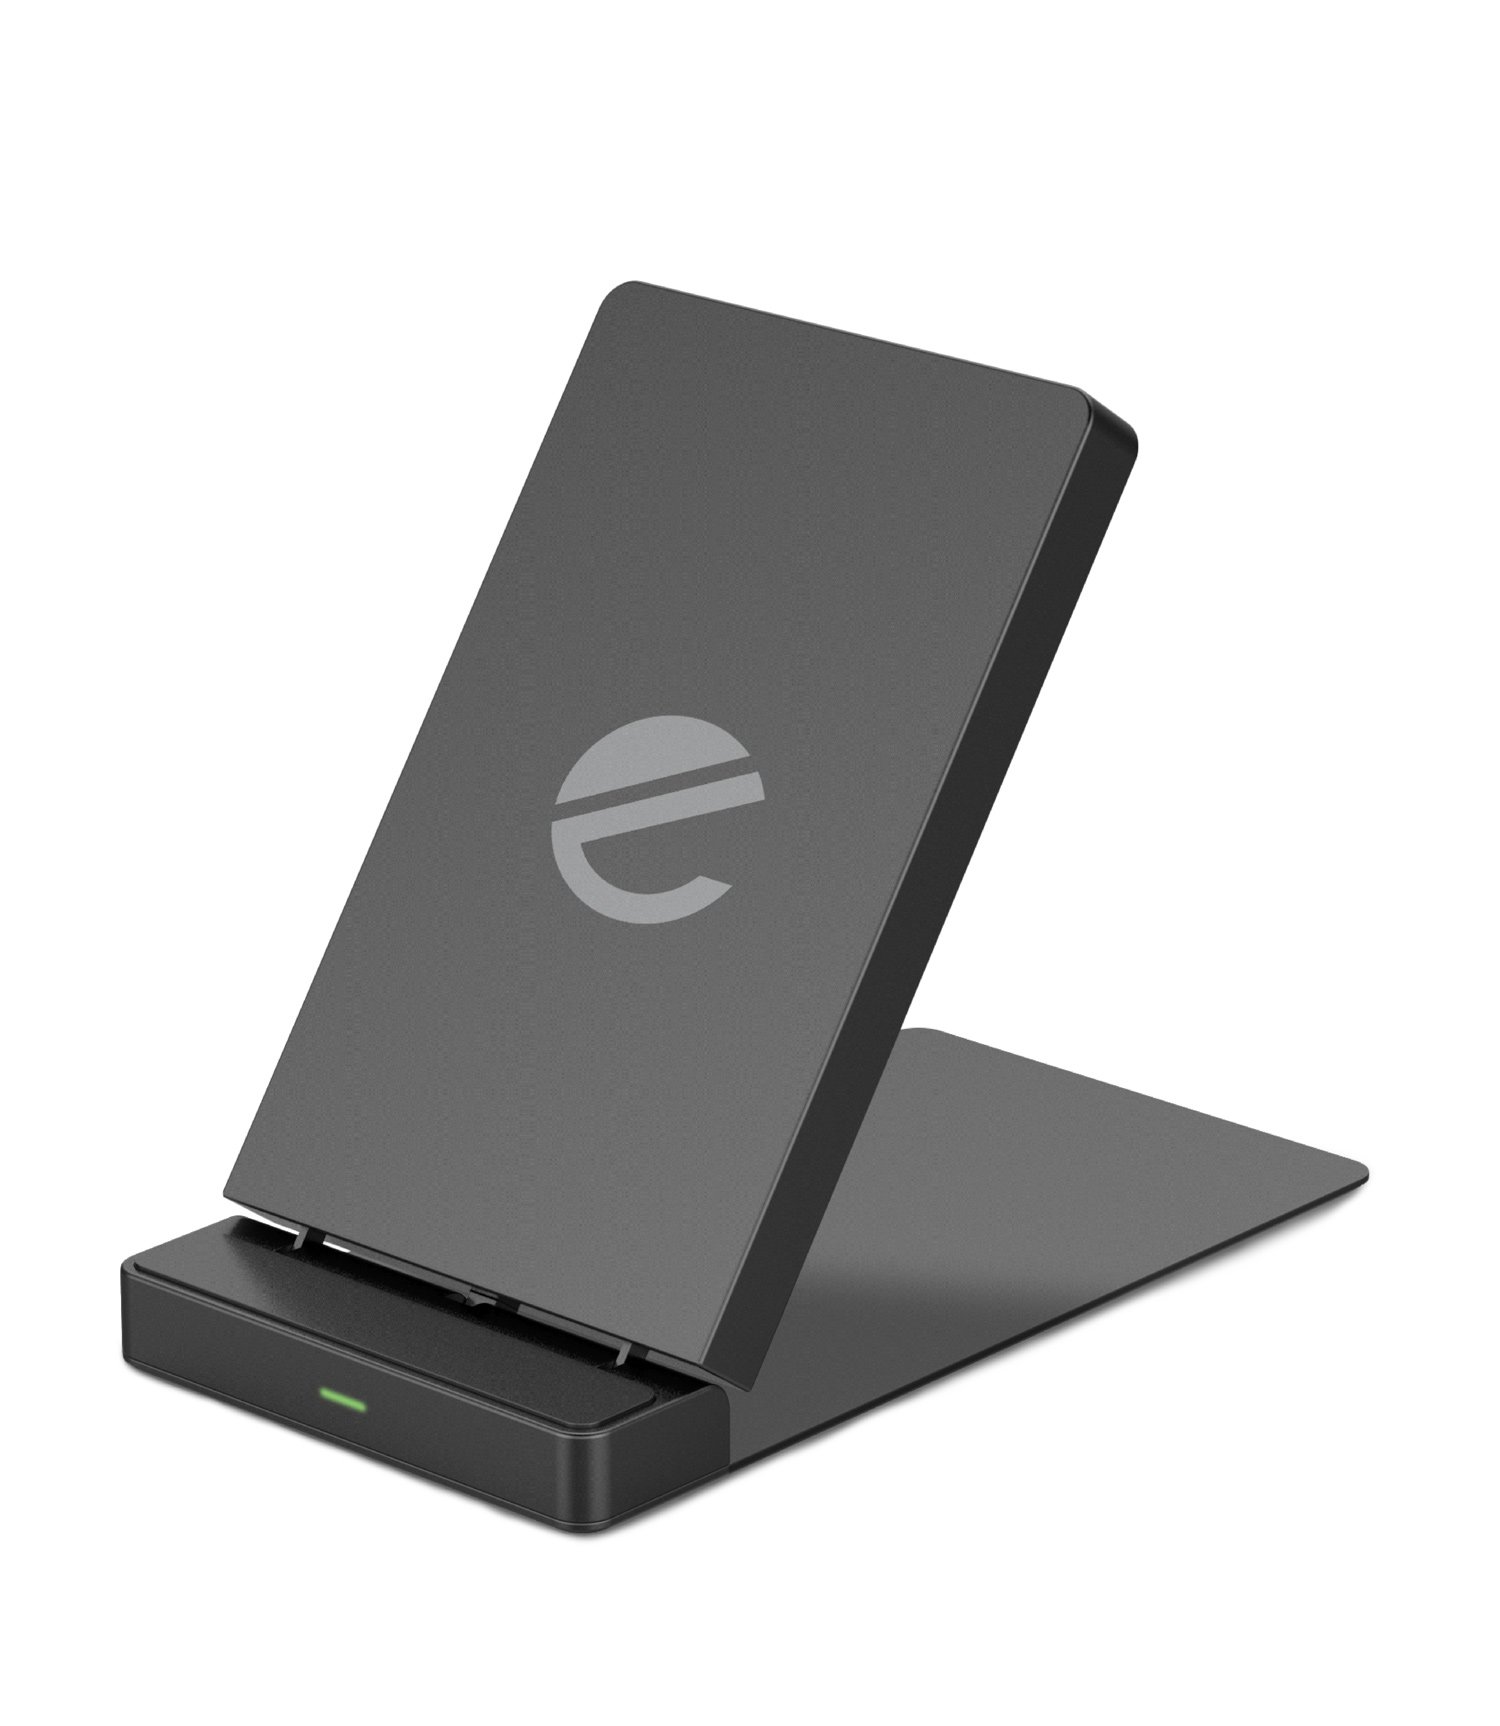 Fast Wireless Charger Foldable 10W Qi Wireless Charging Stand for iPhone X, iPhone 8/8 plus, Galaxy S9 / S9 plus, S8 / S8 Plus, S7/S7 Edge/S6 Edge, Note 8, Nexus 4/5/6/7, LG G6 and more Qi-Enabled Devices